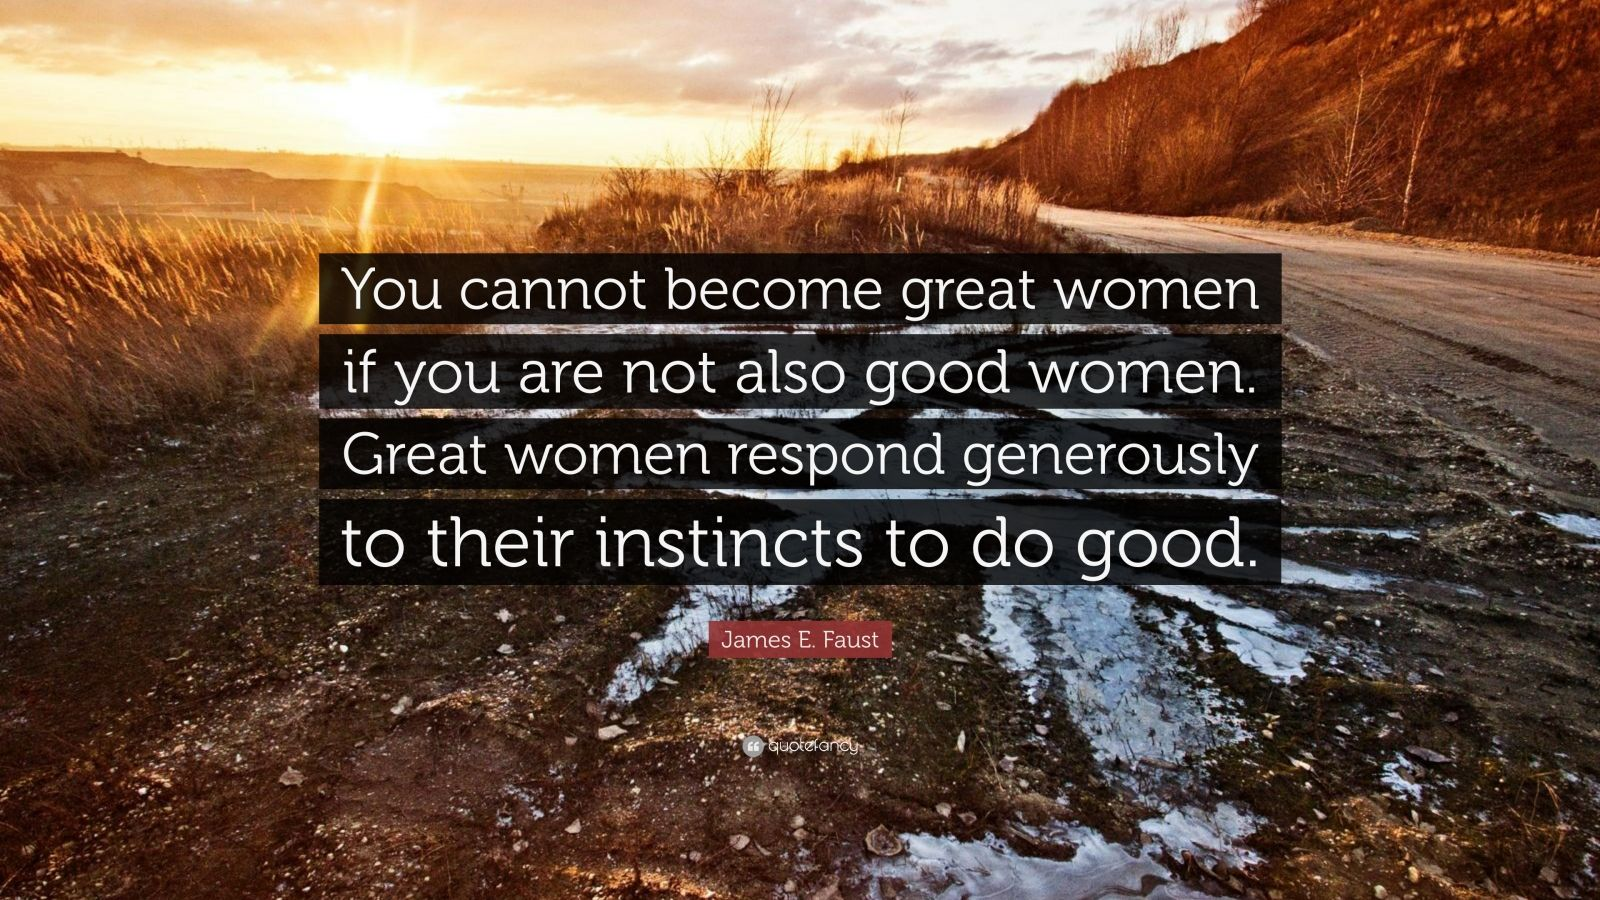 "James E. Faust Quote: ""You cannot become great women if you are not also good women. Great women respond generously to their instincts to do good."""